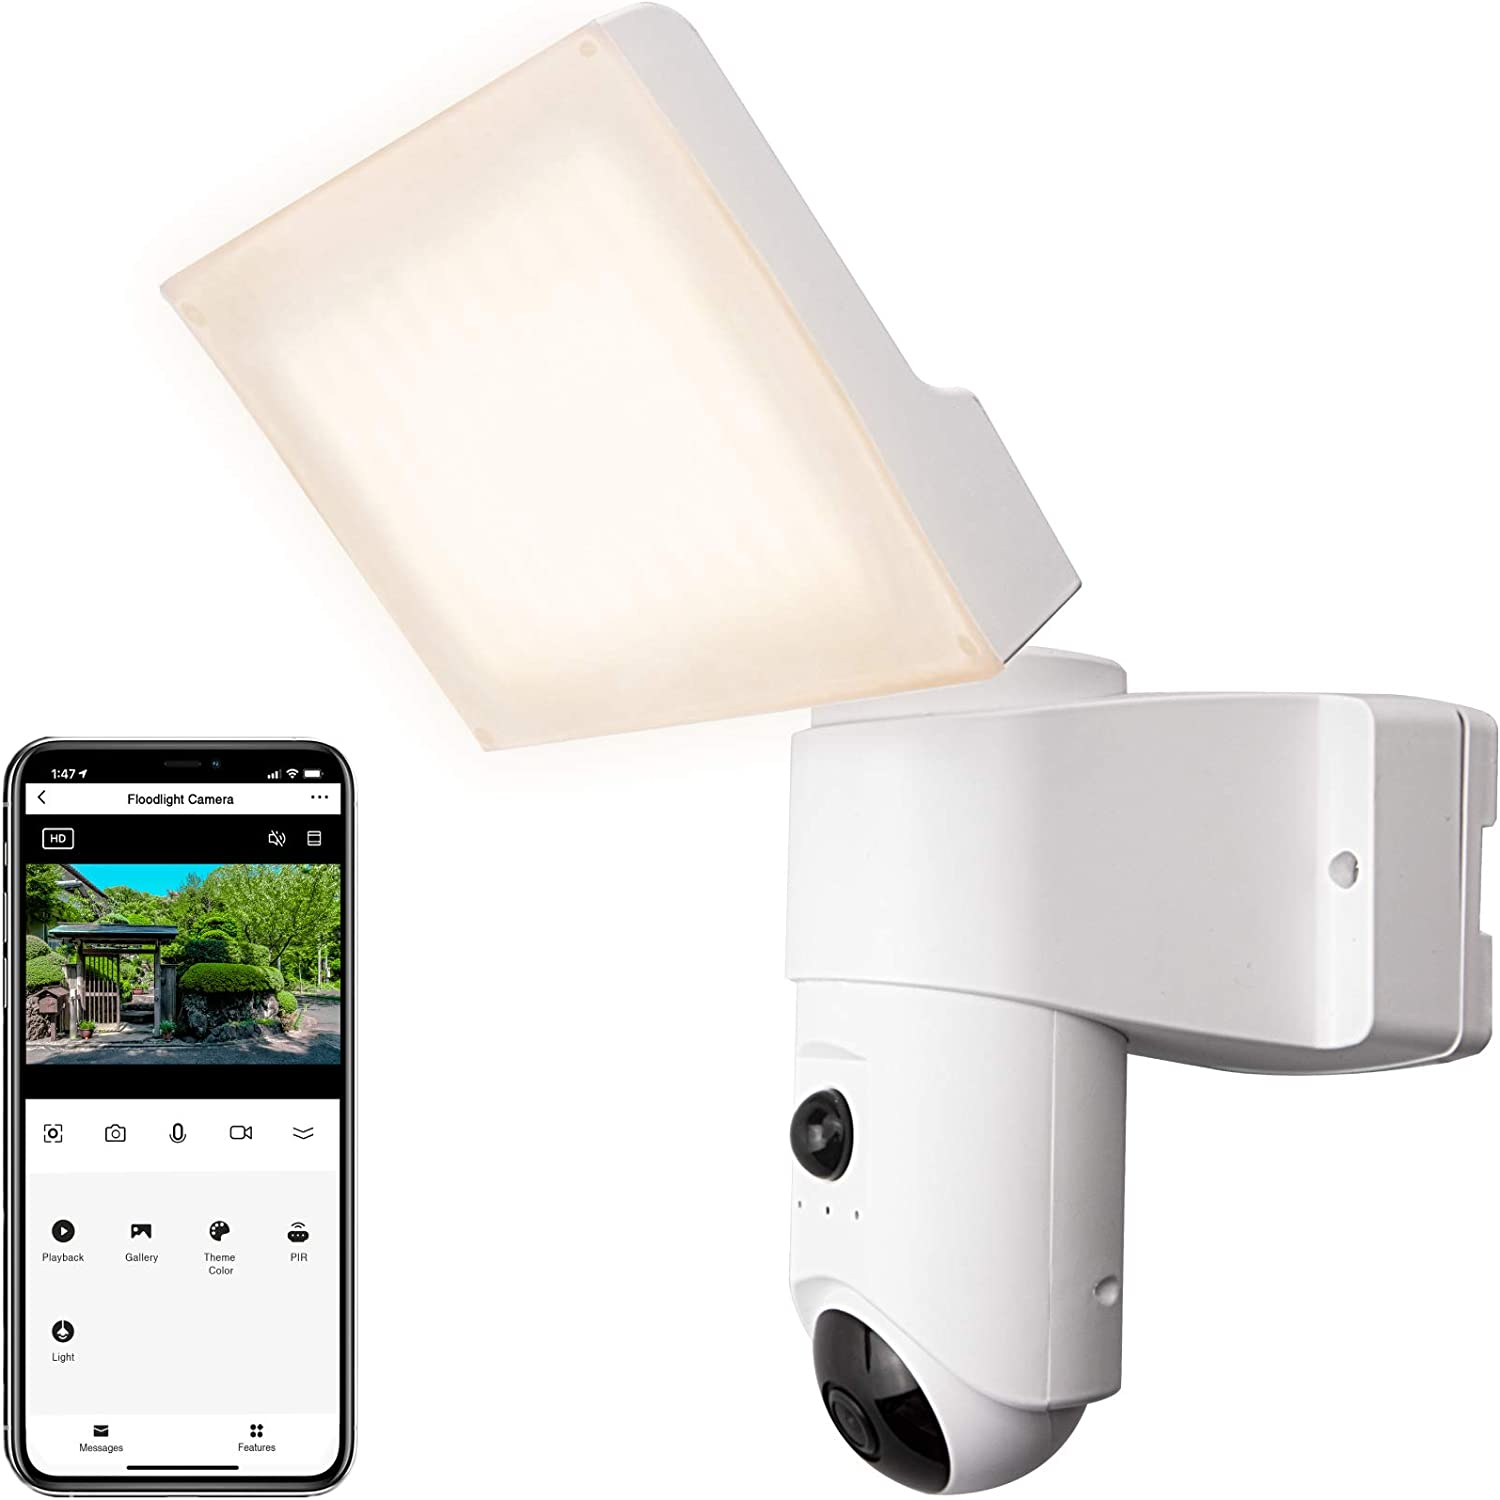 EUARNE Floodlight Camera Smart Security Camera with LED Floodlight, 1080P Spotlight Camera, Compatible with Alexa and Google Assistant, Waterproof, Motion Detection, Garage, Yard